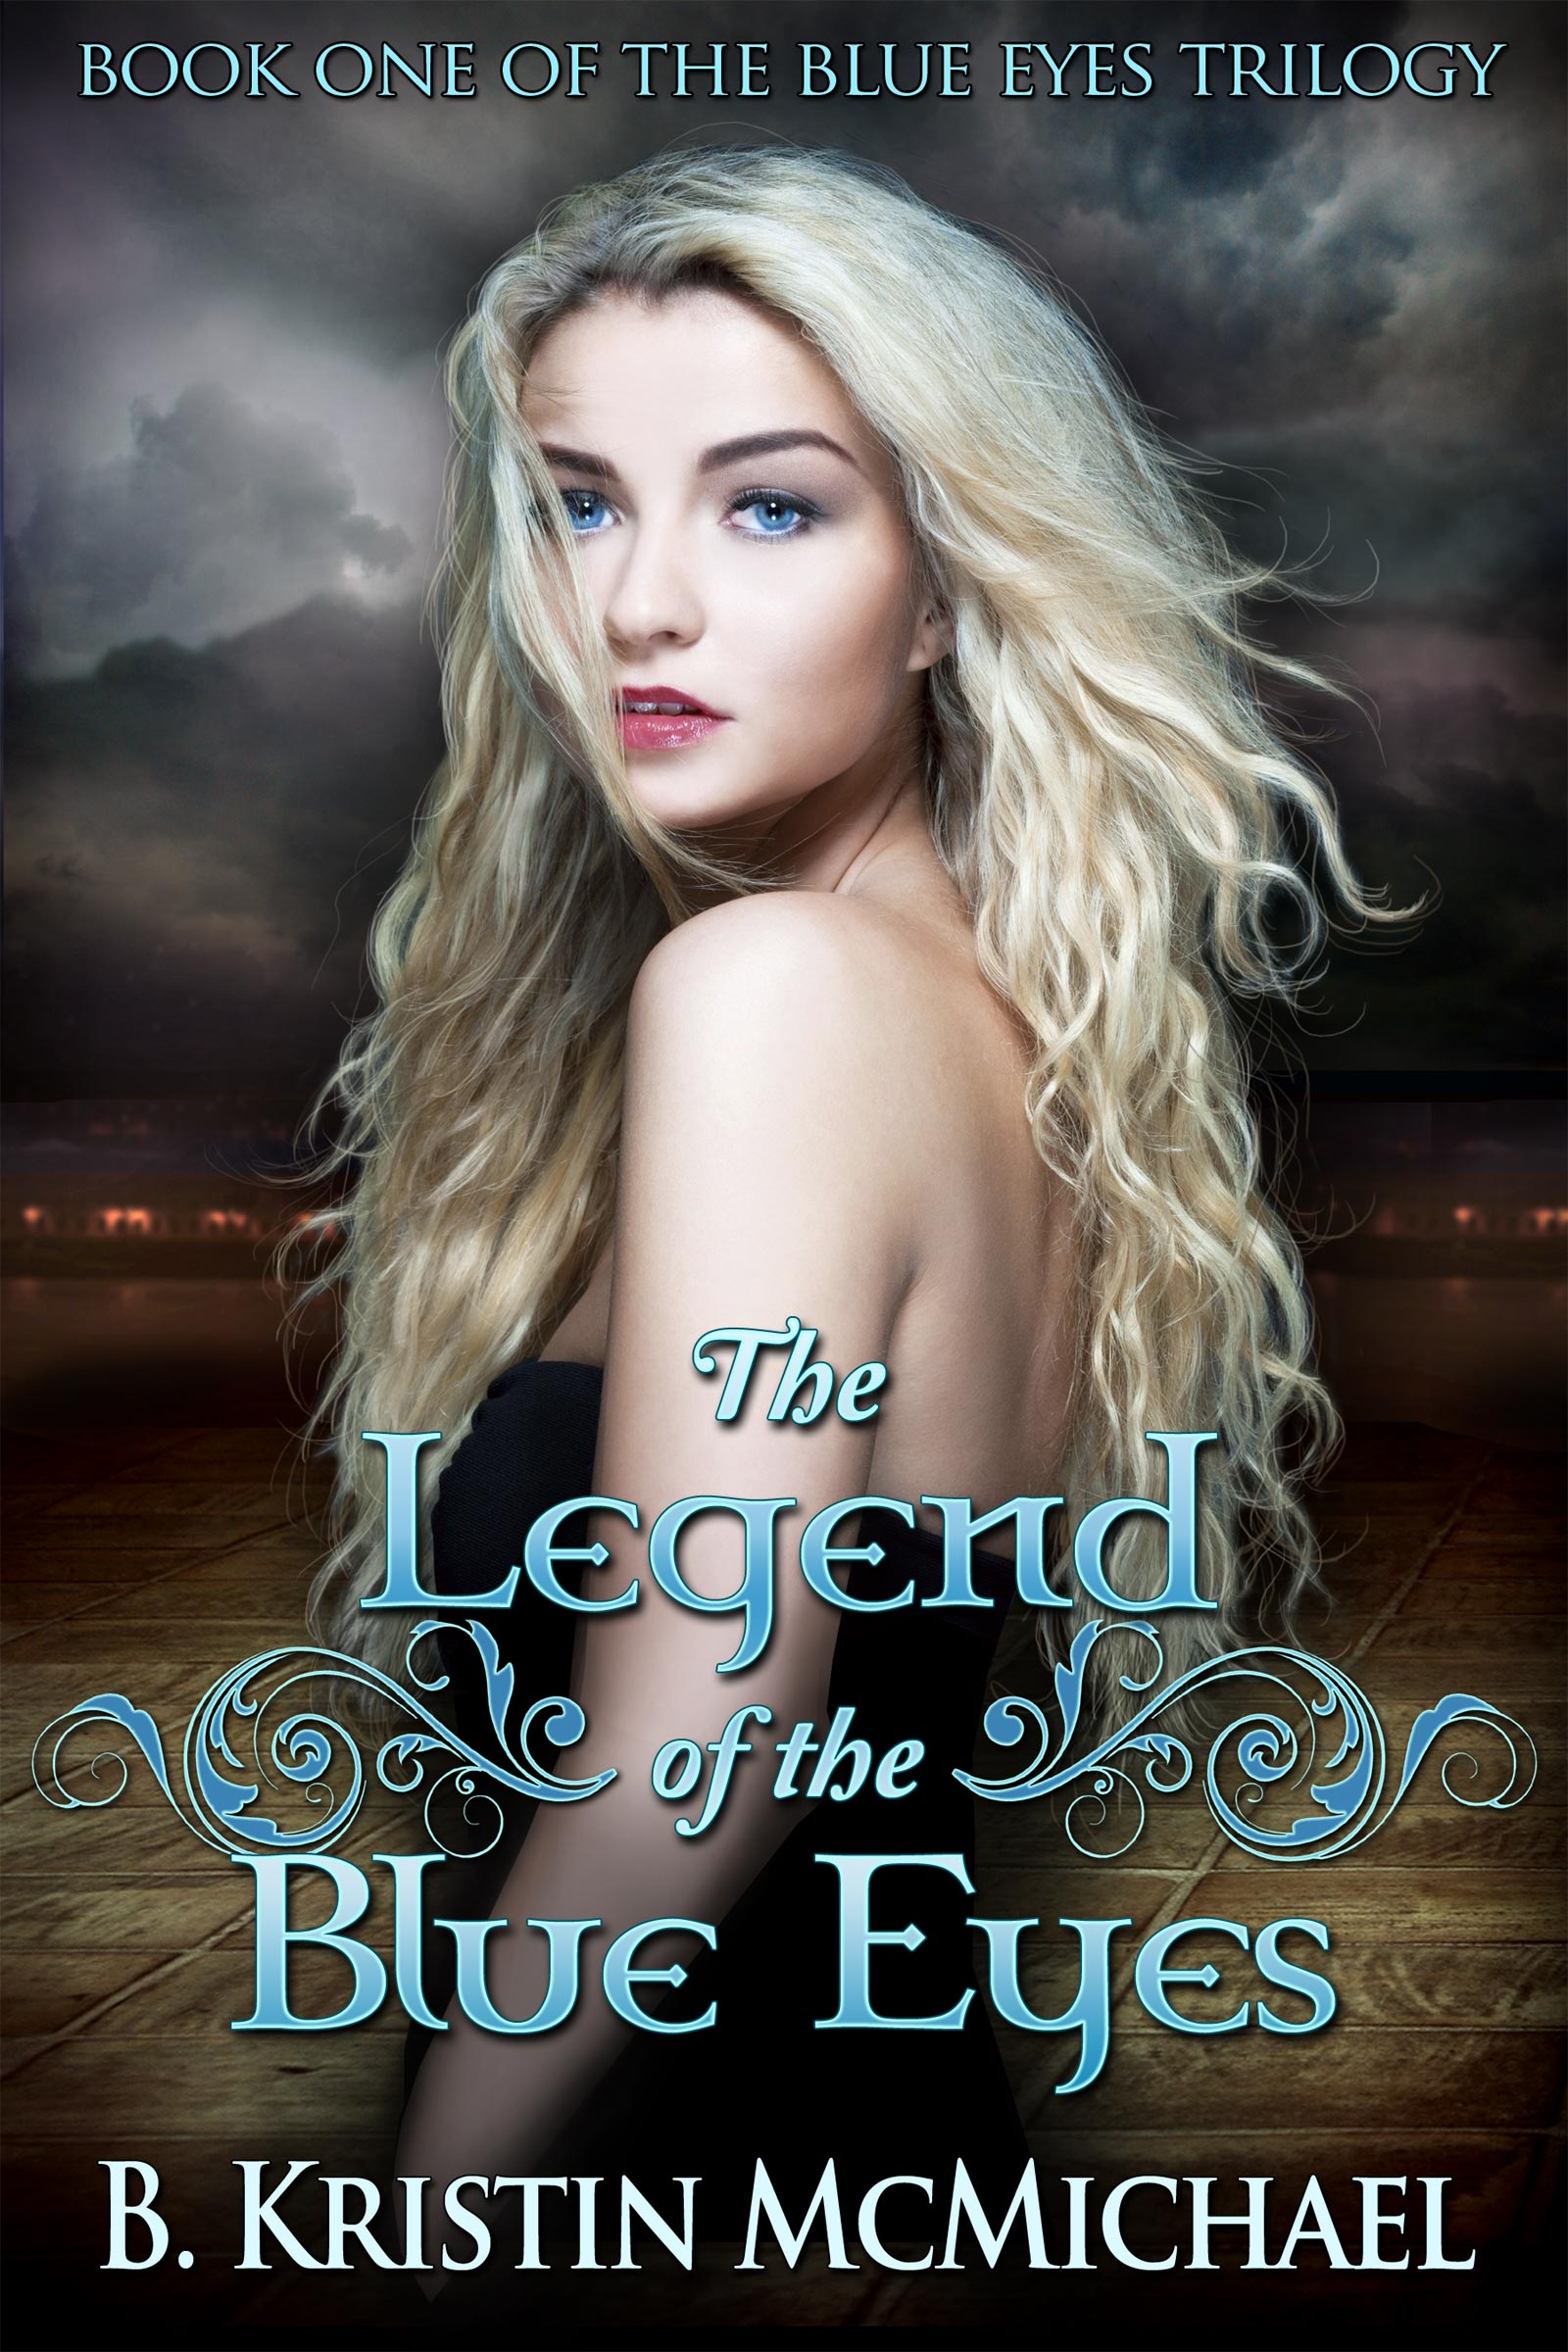 The Legend of the Blue Eyes (sst-ccxxxii)